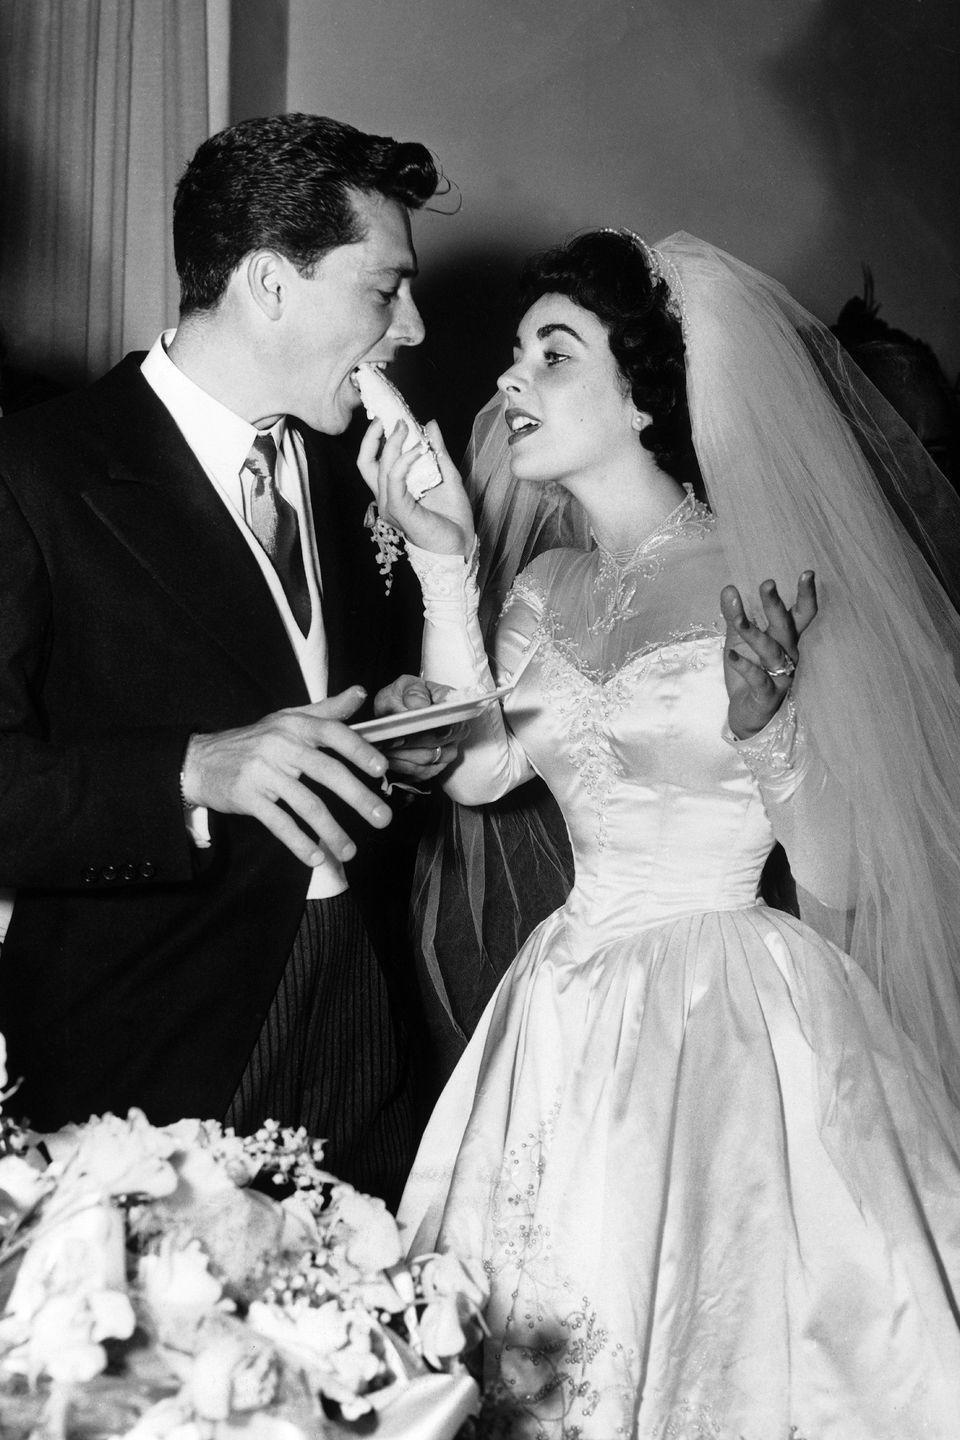 <p>Elizabeth Taylor threw an extravagant affair for her first wedding to Conrad Hilton, which was entirely paid for by MGM studio (and coincidentally happened around the time of the release of her latest movie,<em> Father of the Bride)</em>. Following a church service at Church of The Good Shepherd in Beverly Hills, the couple held a reception with a guest list made up of Hollywood's biggest stars—from Fred Astaire to Ginger Rogers. </p><p>Unfortunately, the marriage wasn't as big of a success as Taylor's film (which was followed by a sequel, <em>Father's Little Dividend</em>) and the couple divorced in 1952. </p>